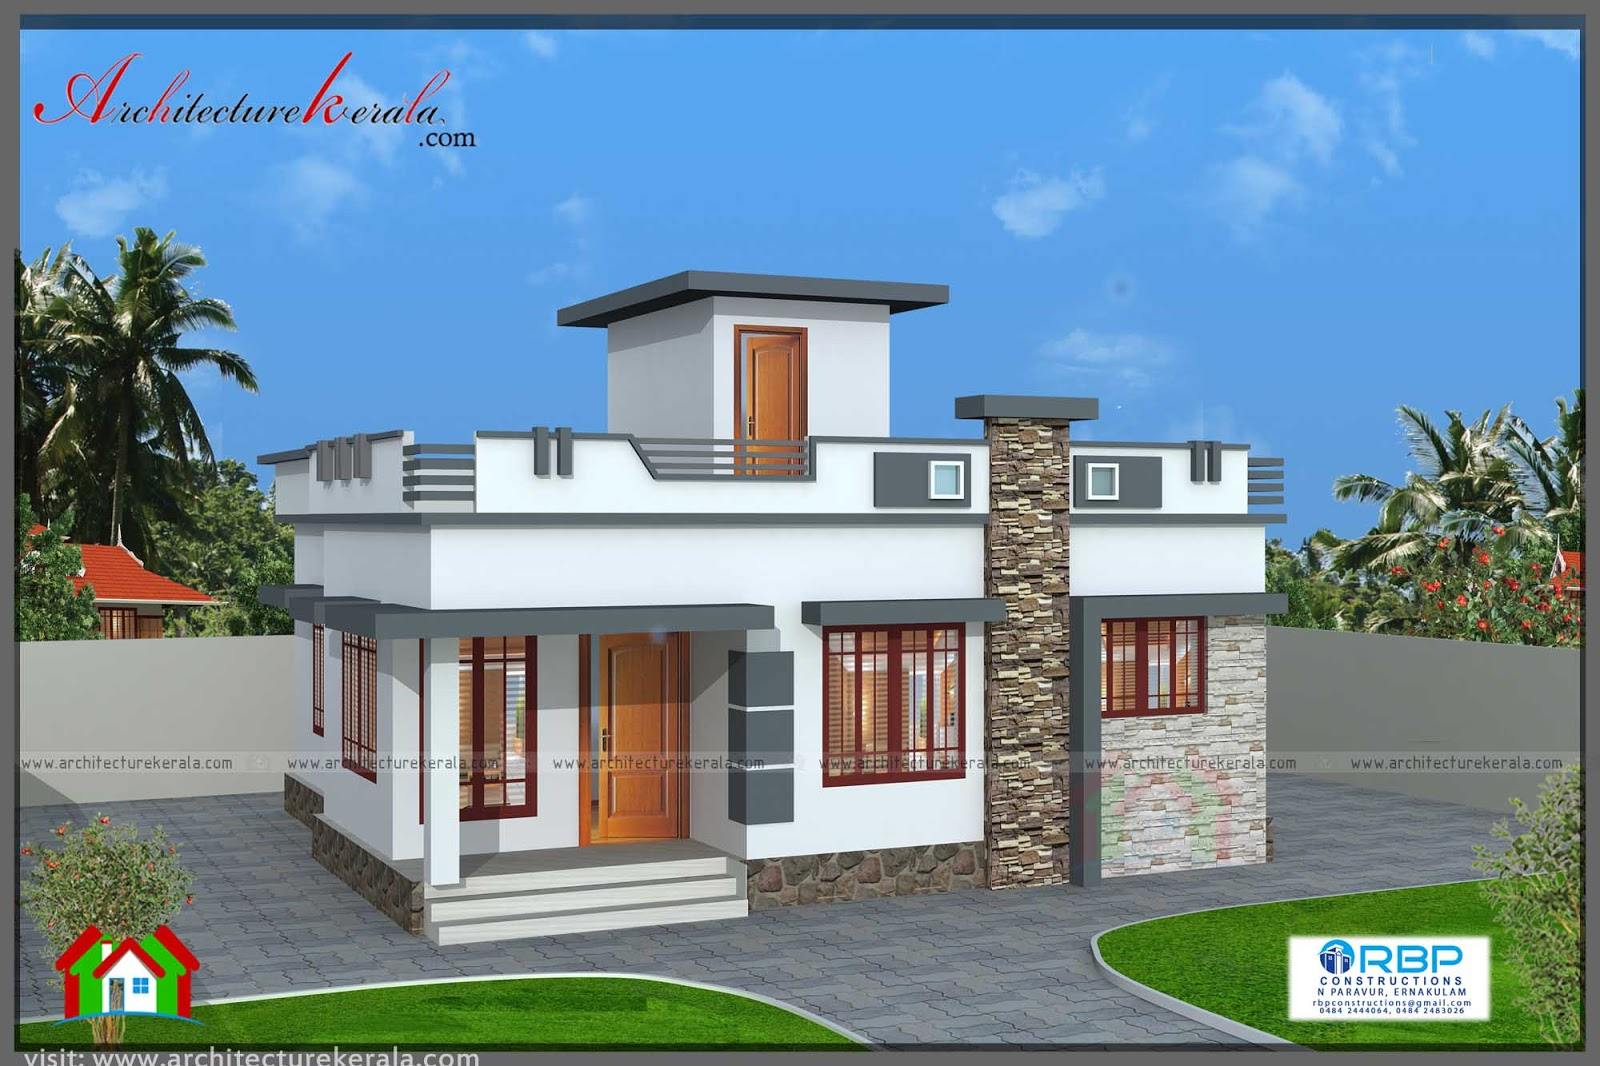 700 SQFT PLAN AND ELEVATION FOR MIDDLE CLASS FAMILY ARCHITECTURE